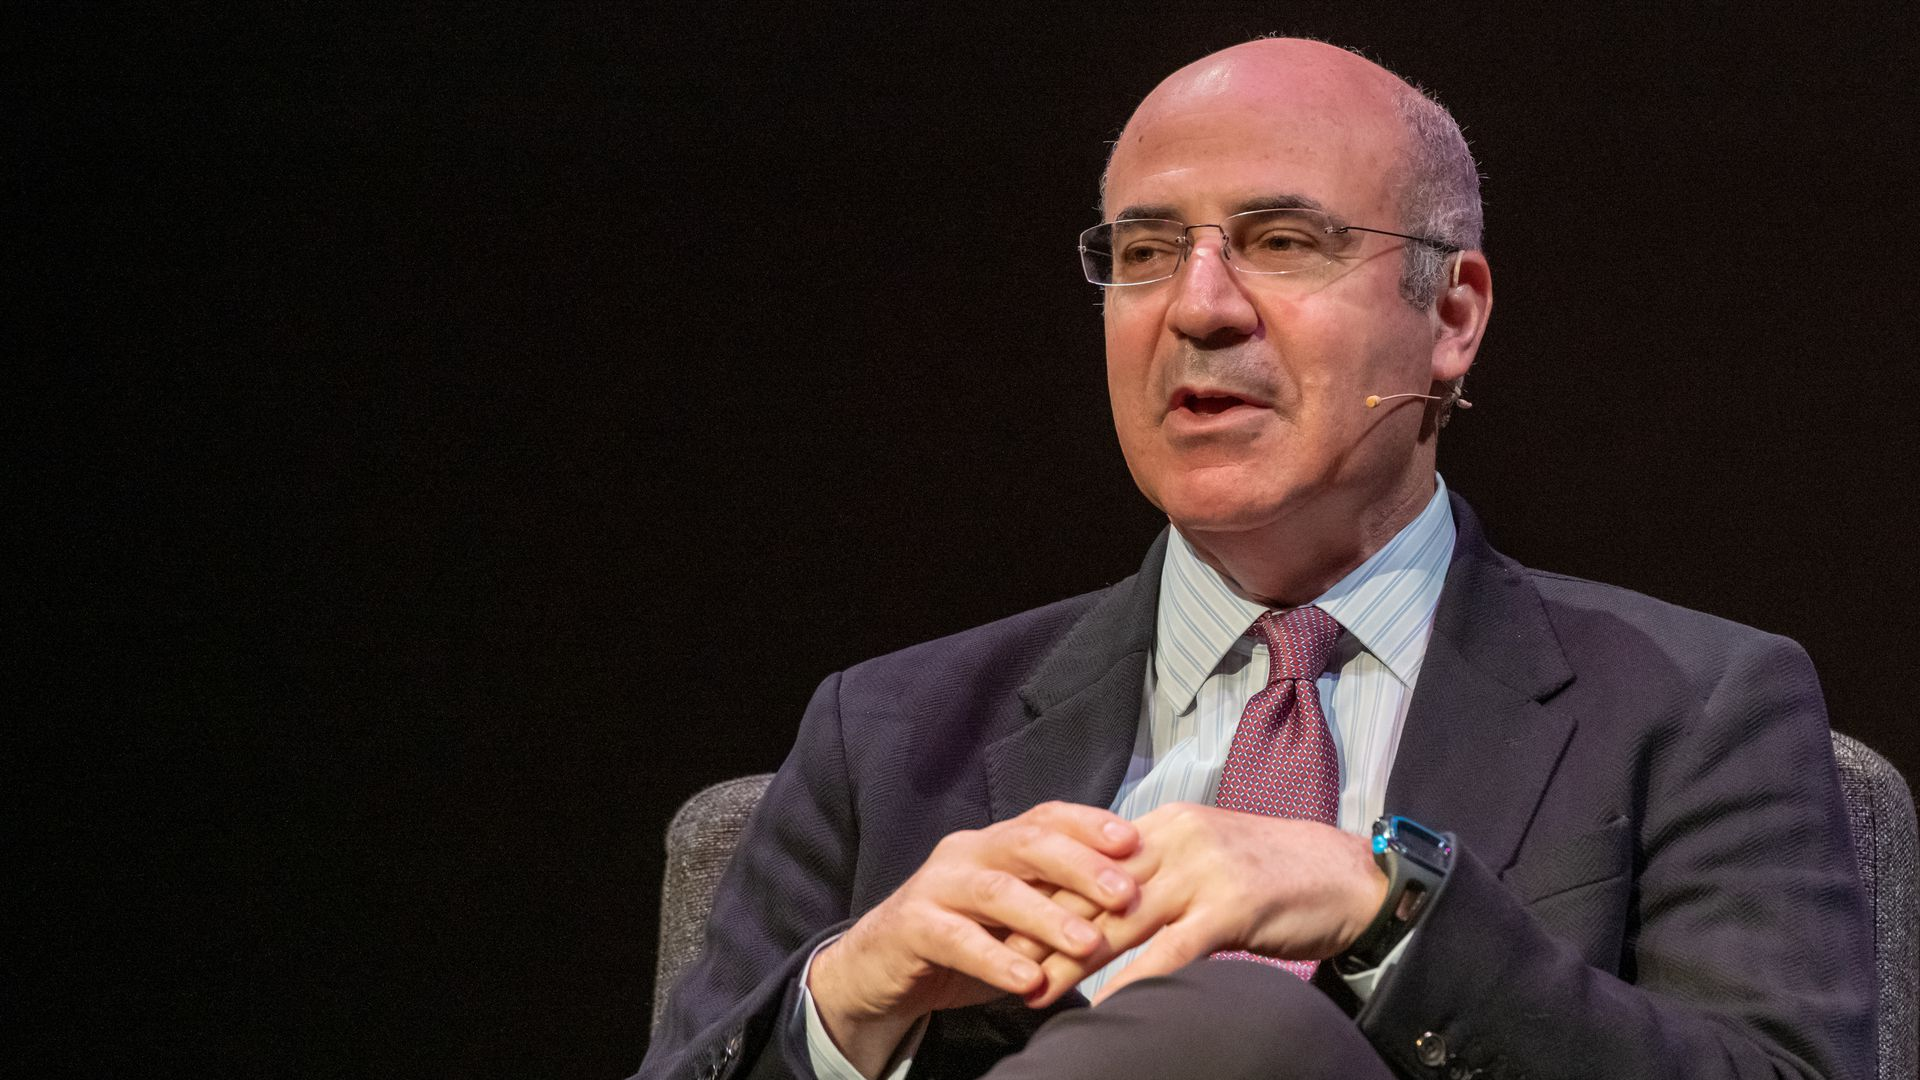 Putin foe Bill Browder was warned of potential danger in Davos